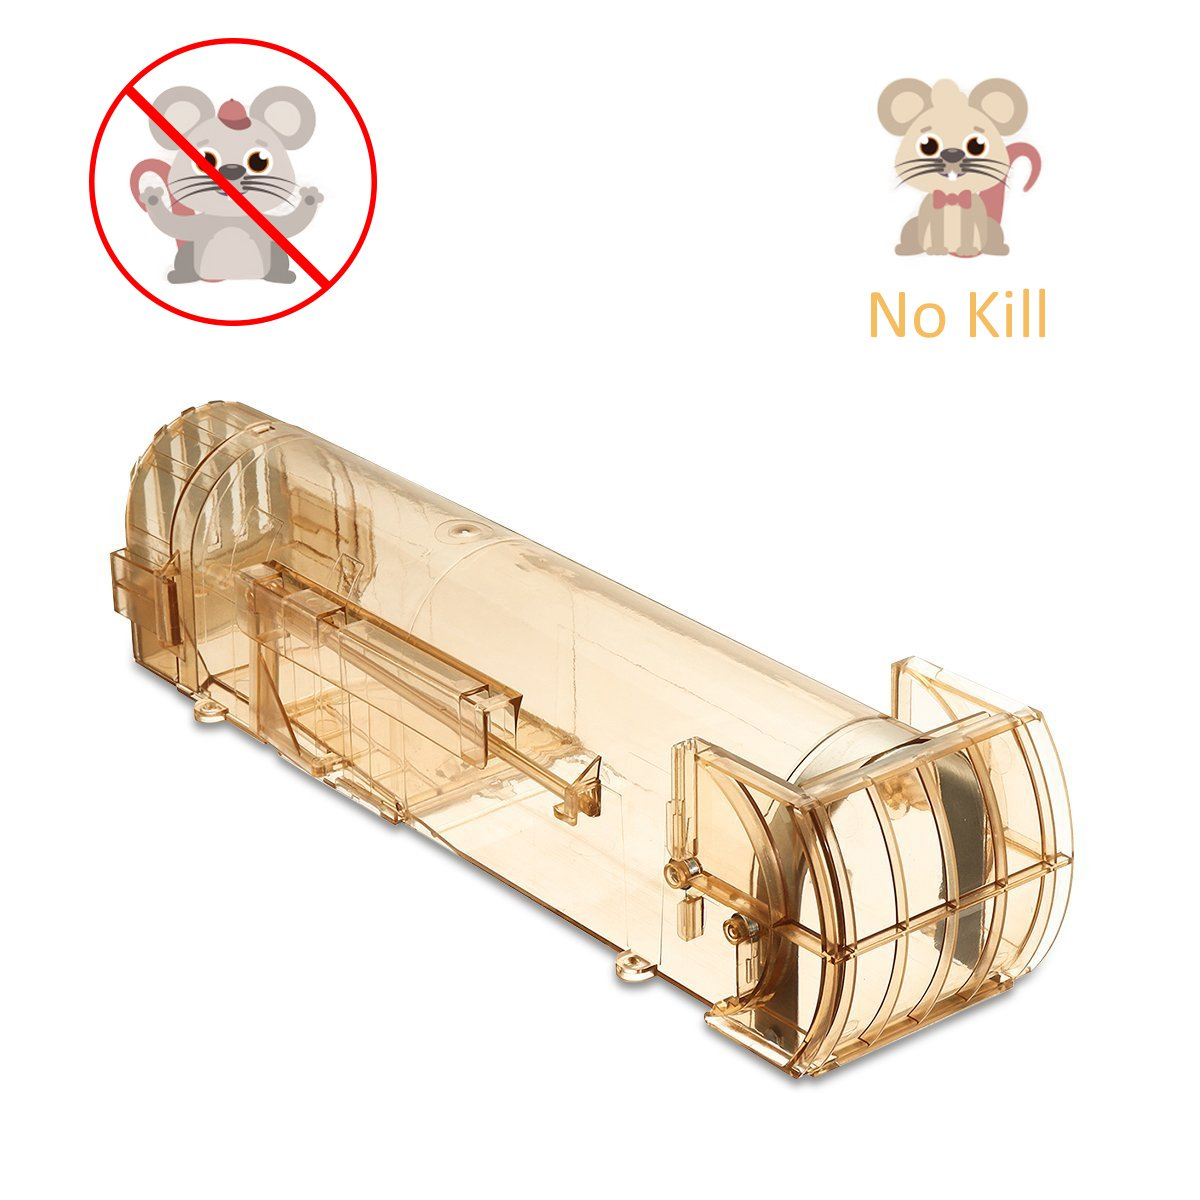 SAFETYON Auto Mouse Trap Safety Humane No Kill Rat Rodents Pest Control Bucket Mice Catcher, Catch and Release Trap Brown